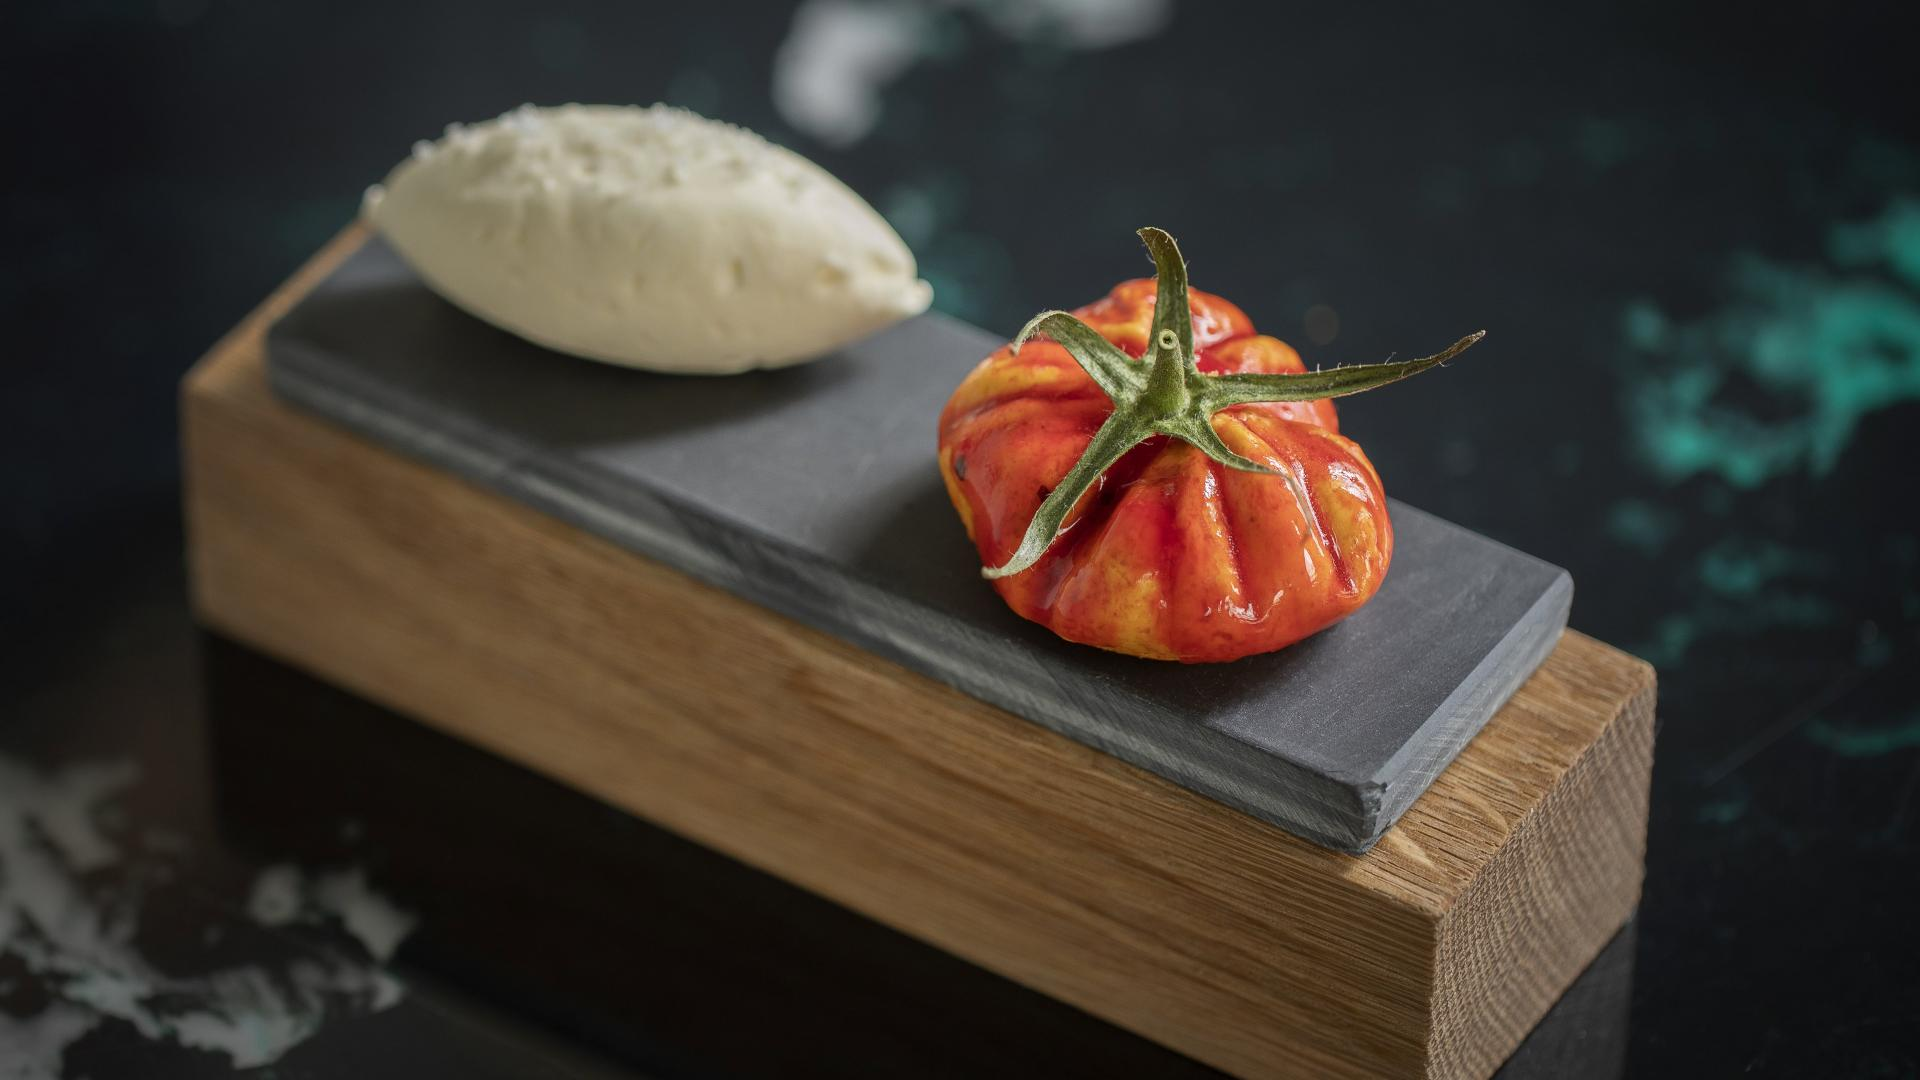 This is an image of the tomato butter at The Princess of Shoreditch